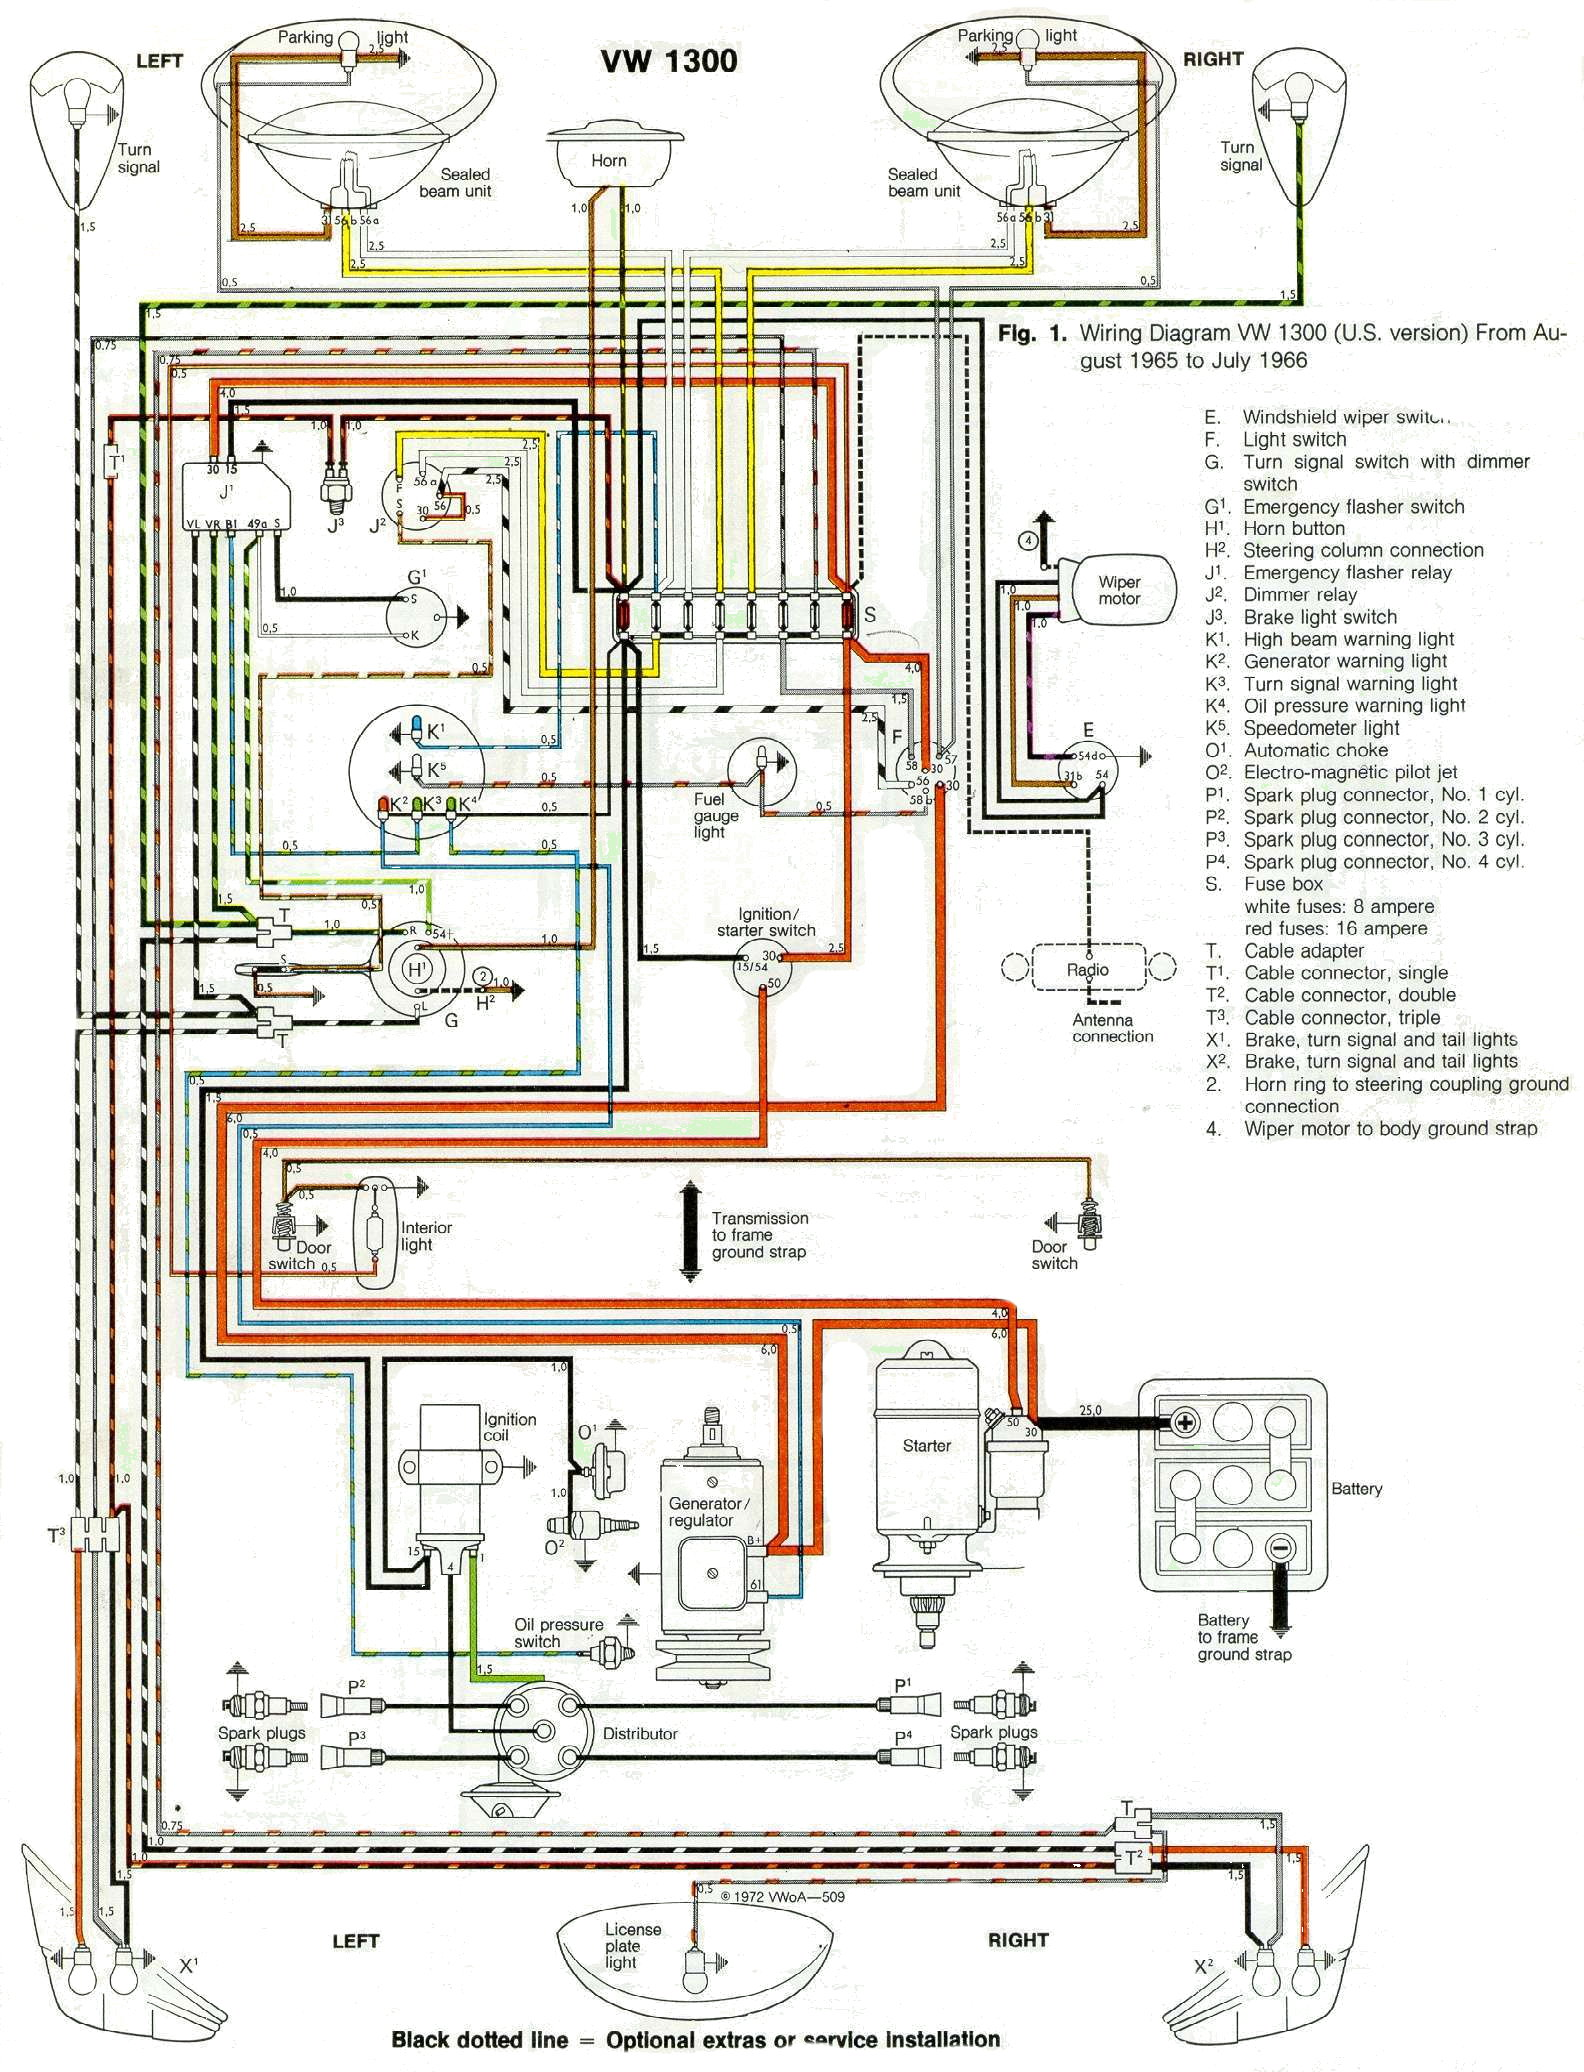 1966 Wiring 1966 wiring diagram vw beetle wiring diagram at virtualis.co